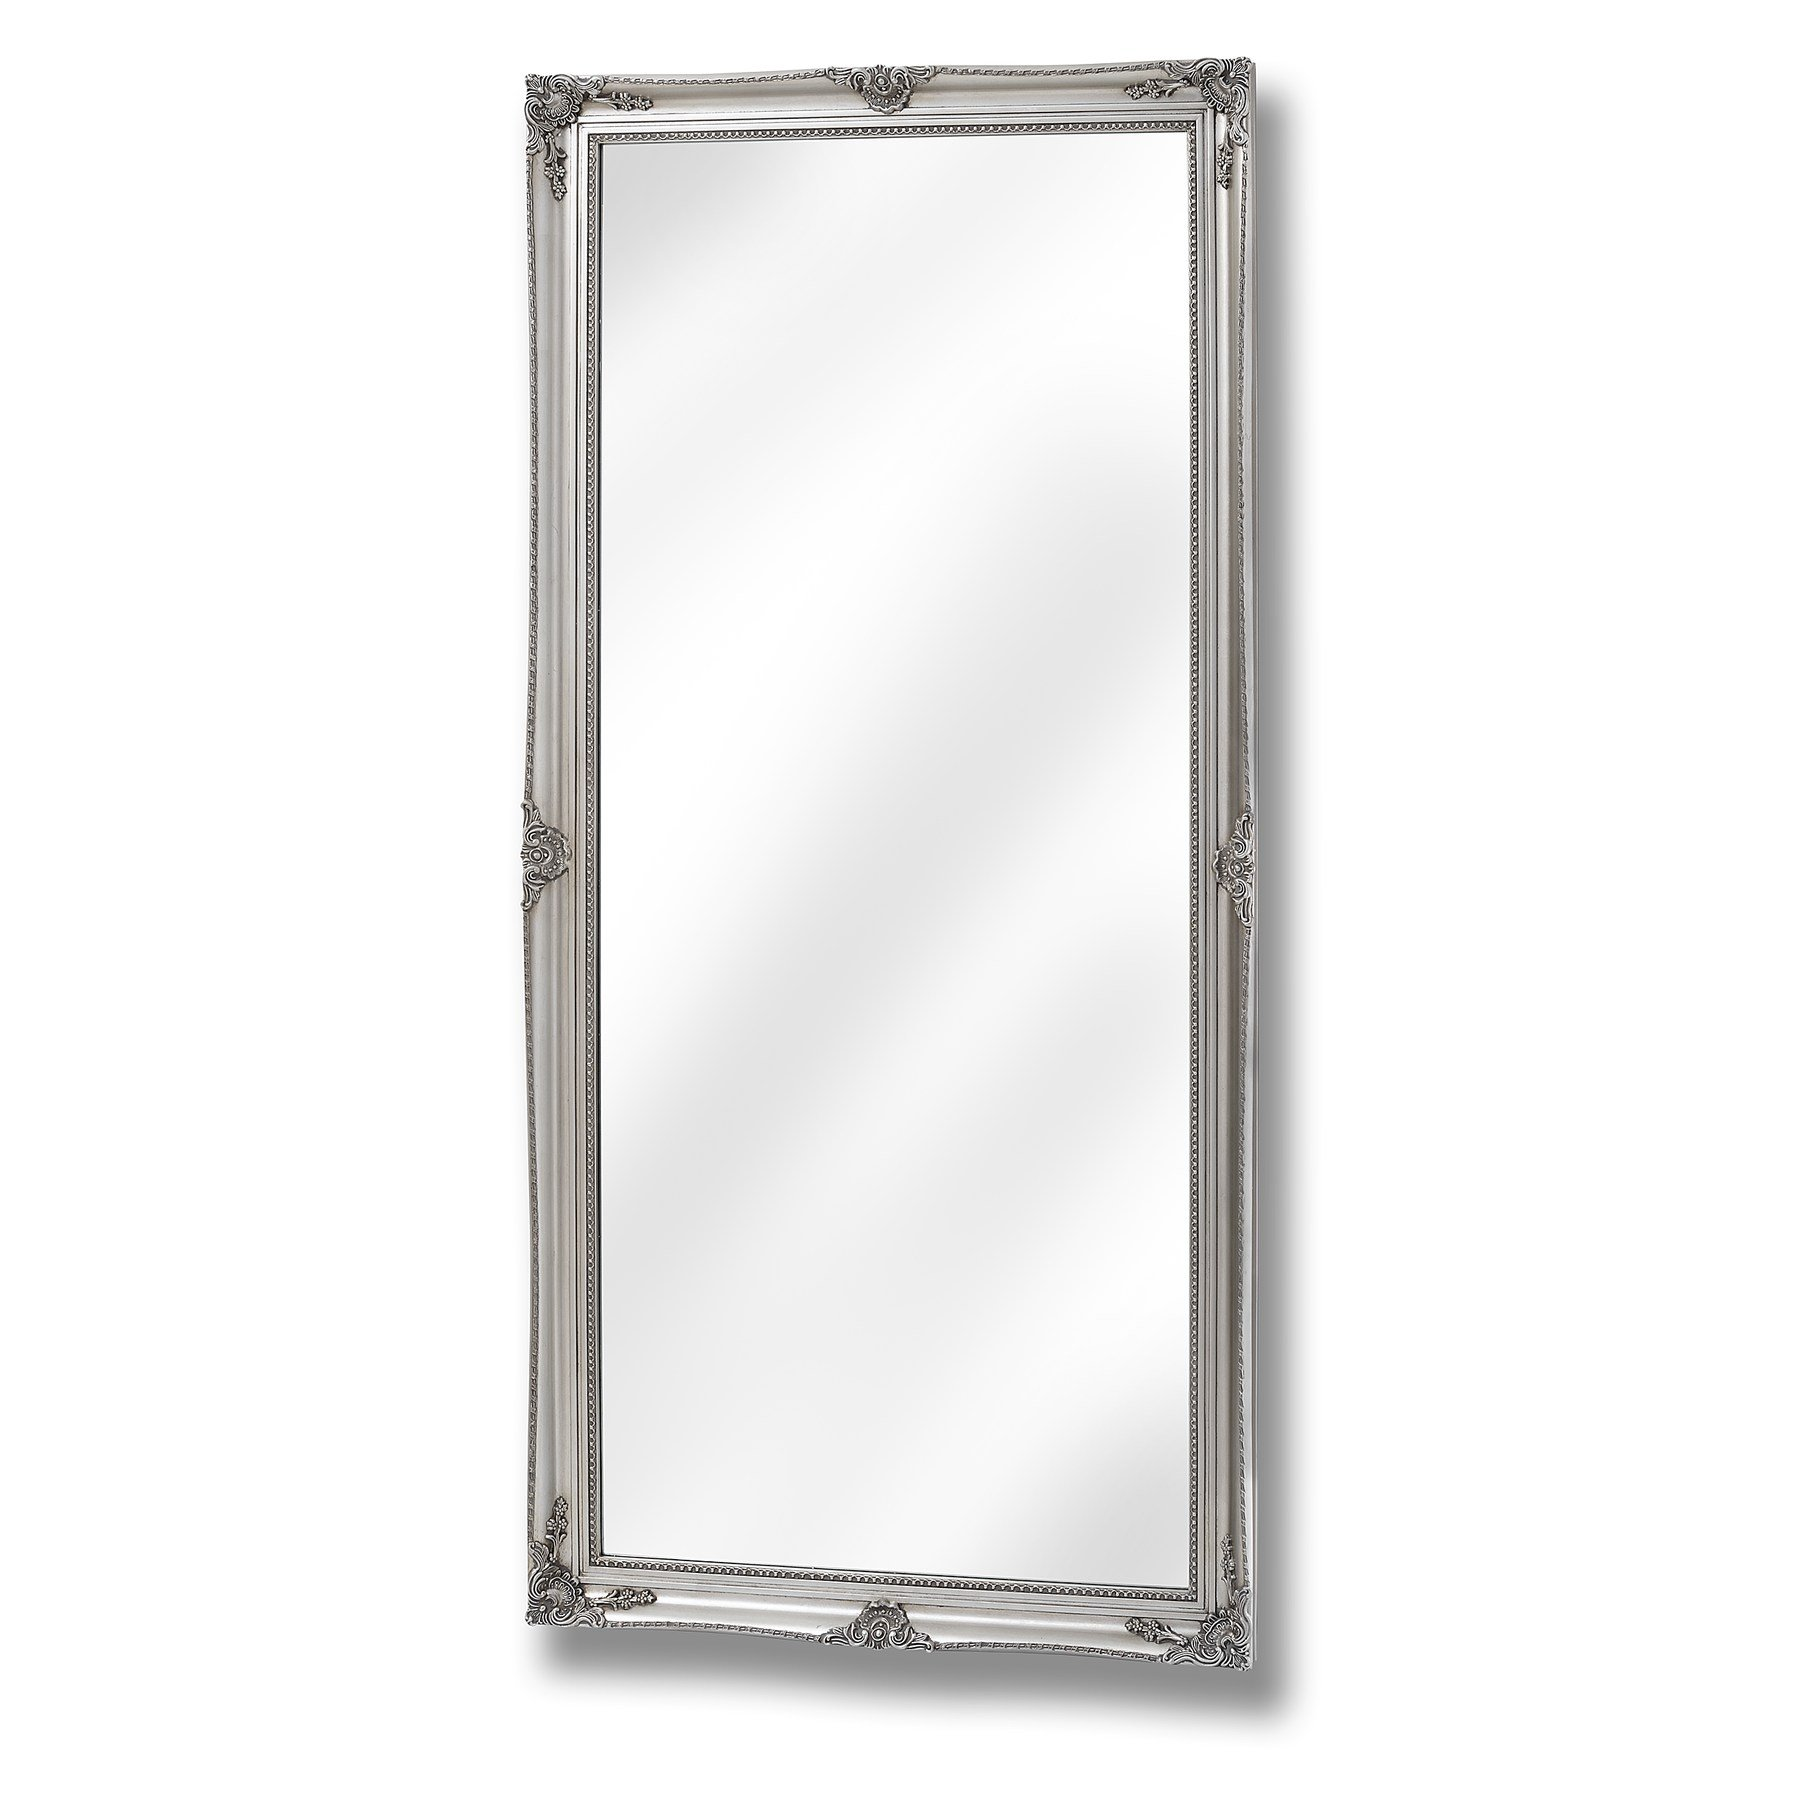 From hill interiors for Silver full length mirror